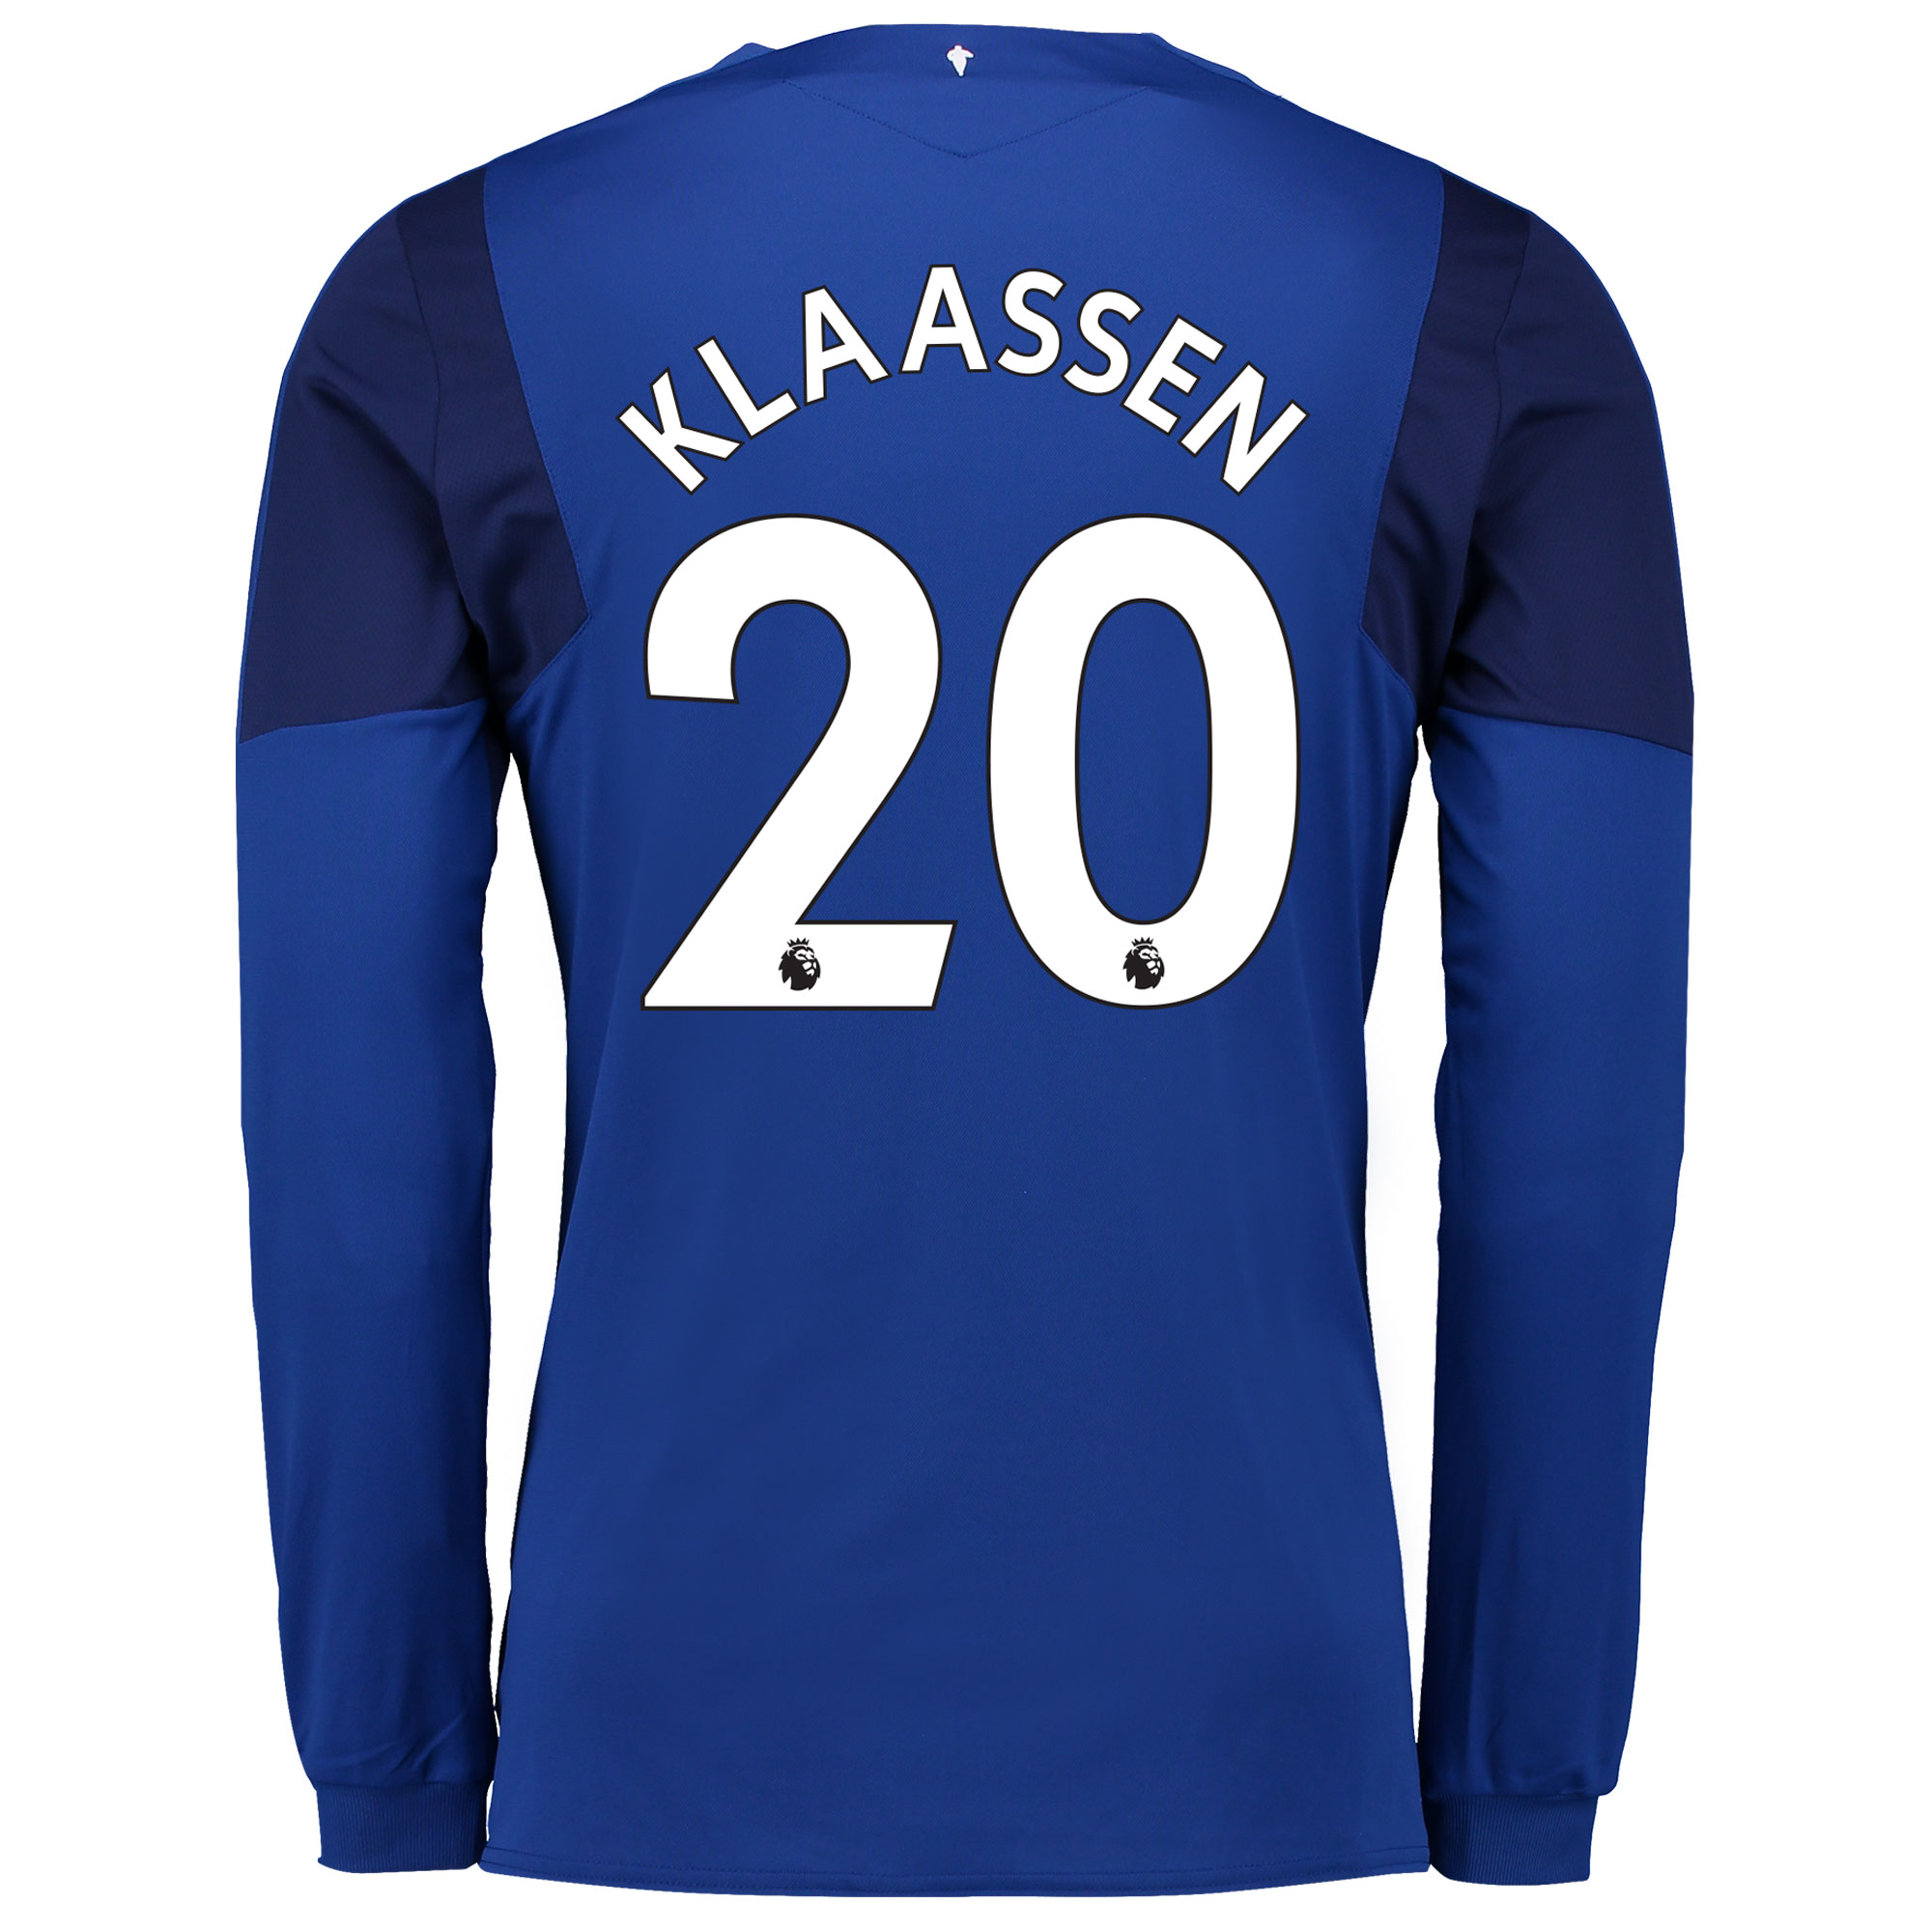 Everton Home Shirt 2017/18 - Long Sleeved with Klaassen 20 printing